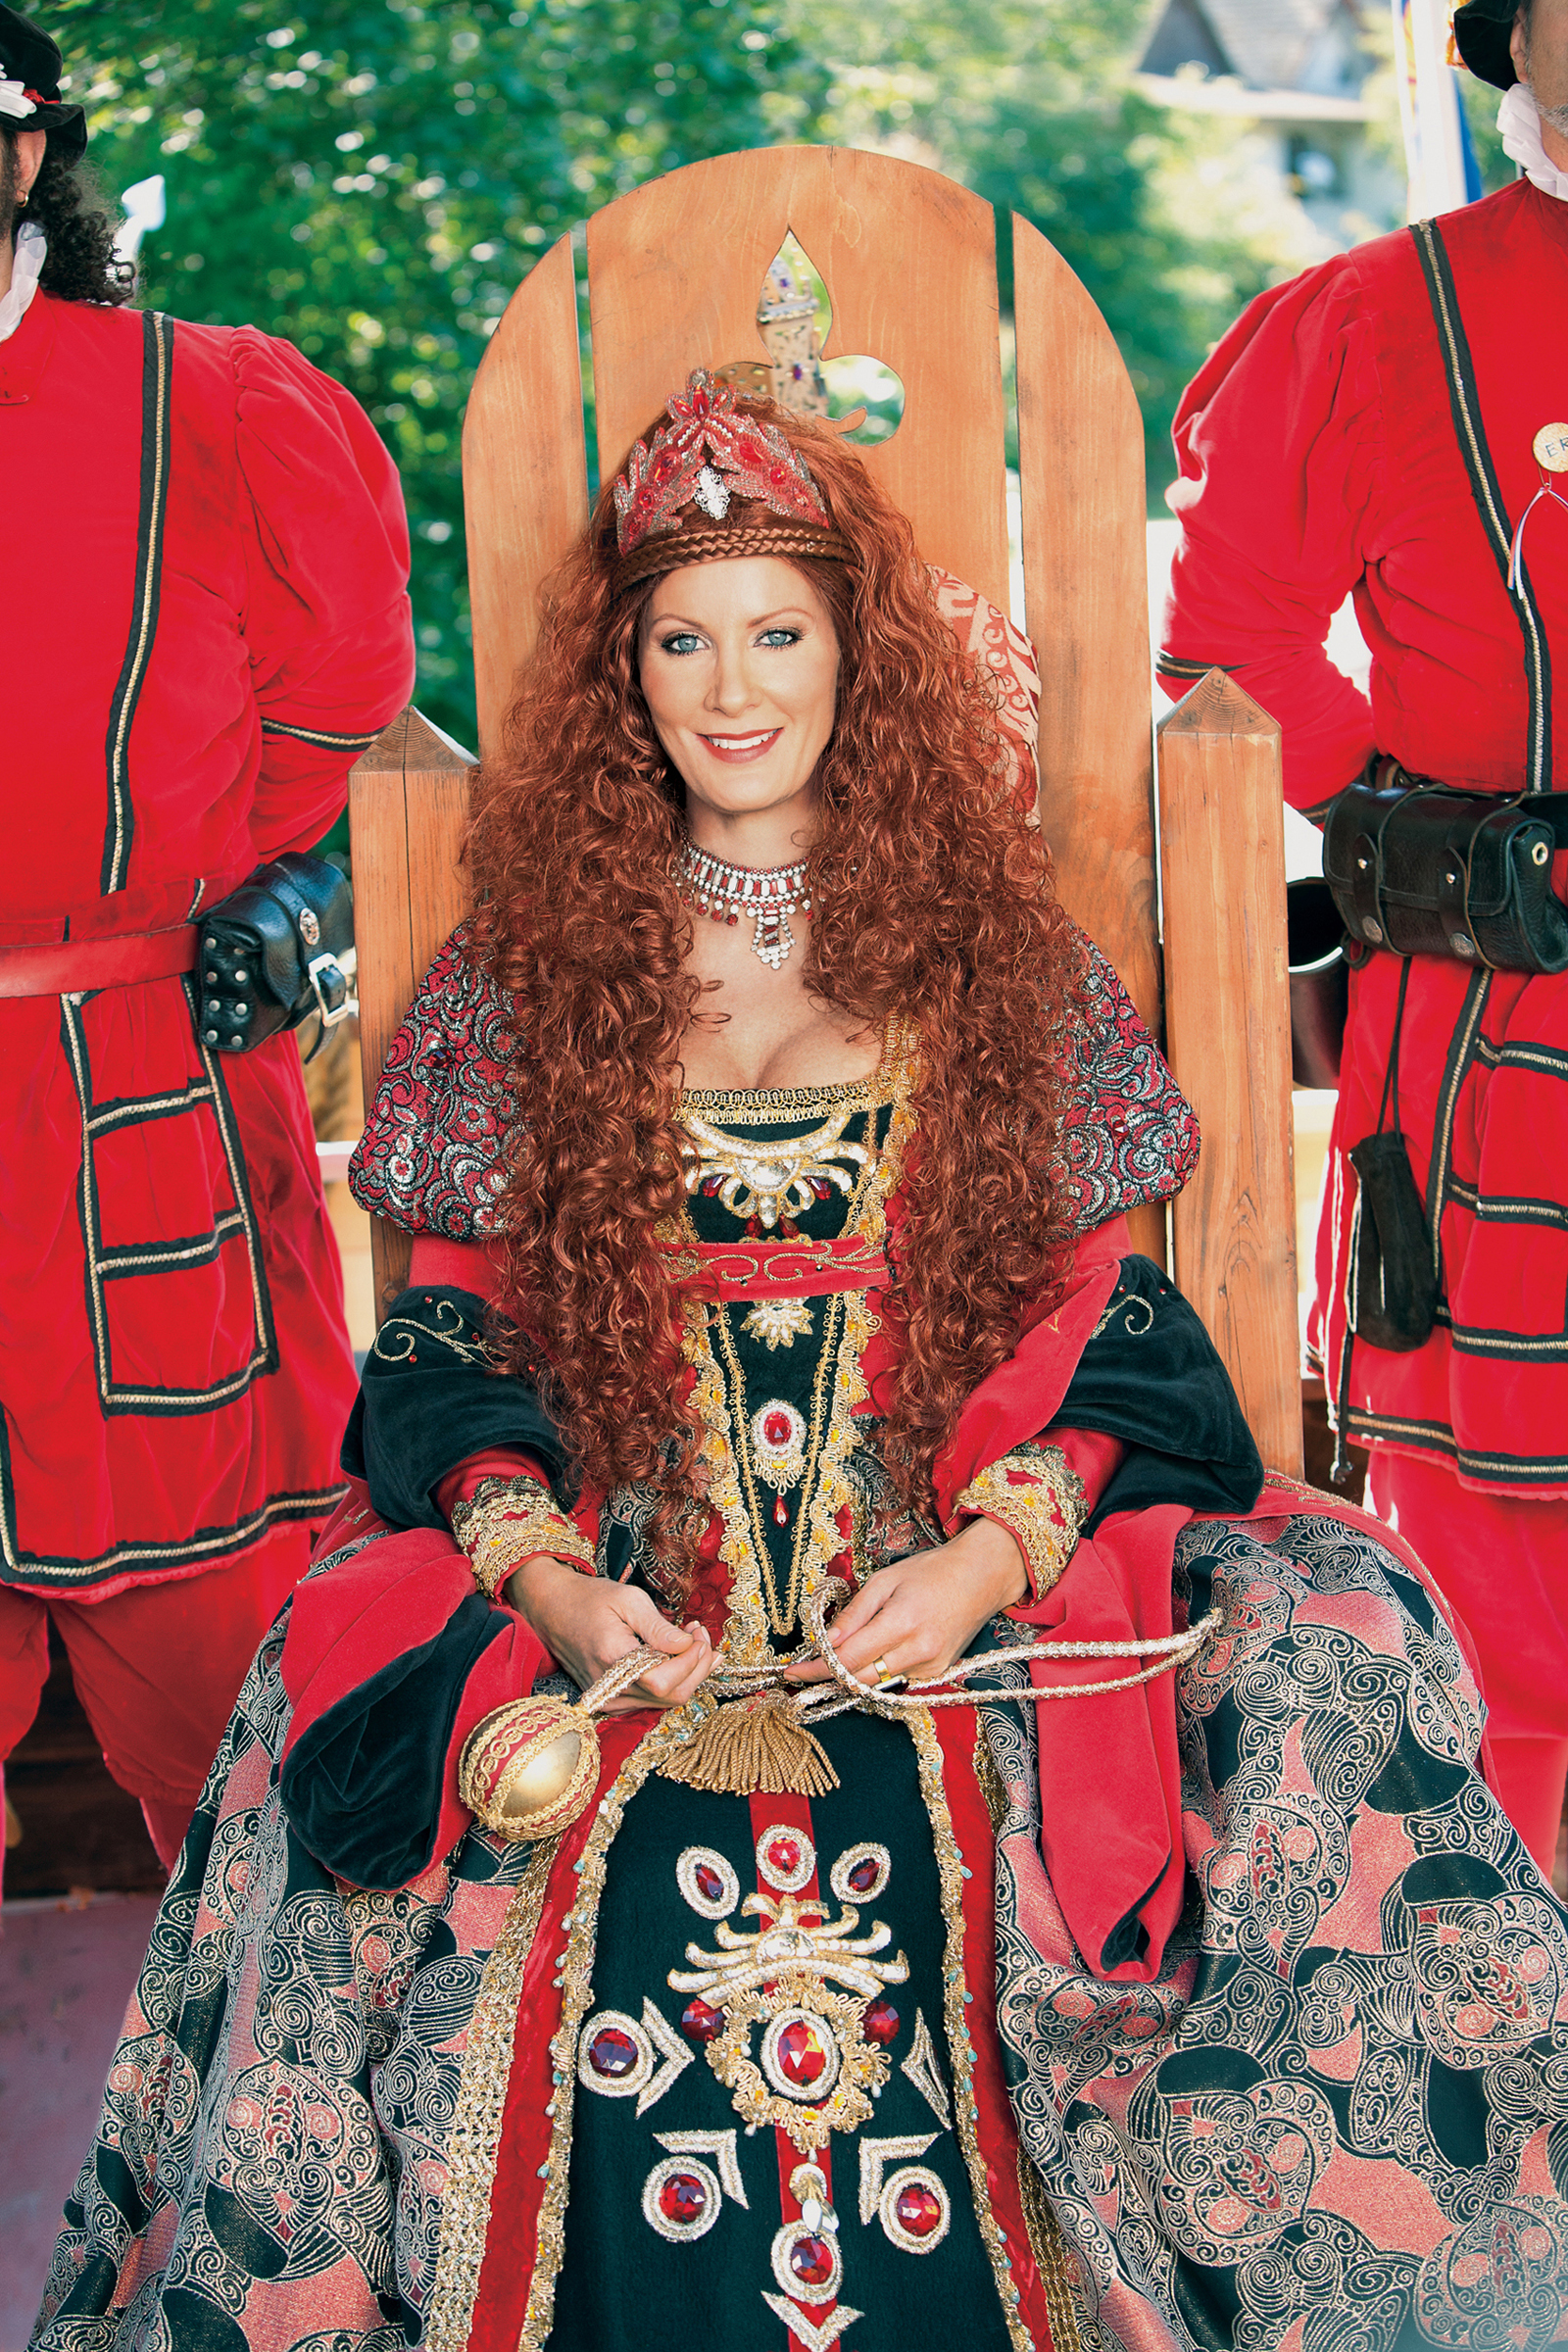 Sandra Lee's Queen Elizabeth costume